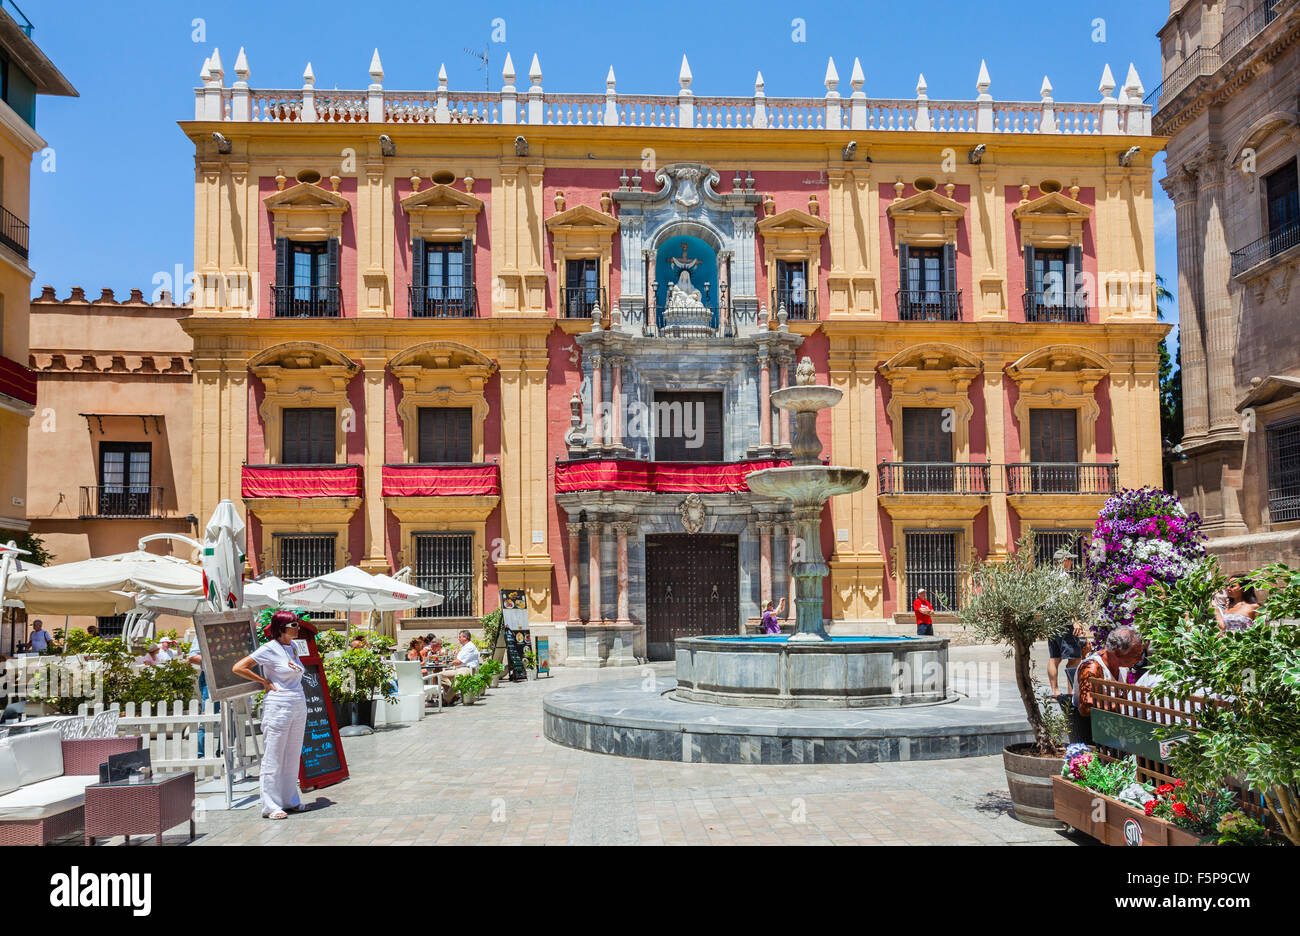 view of the Palacio Episcopal, Bishop's Palace with Plaza del Obispo Fountain at Plaza del Obispo, Malaga, Andalusia, - Stock Image